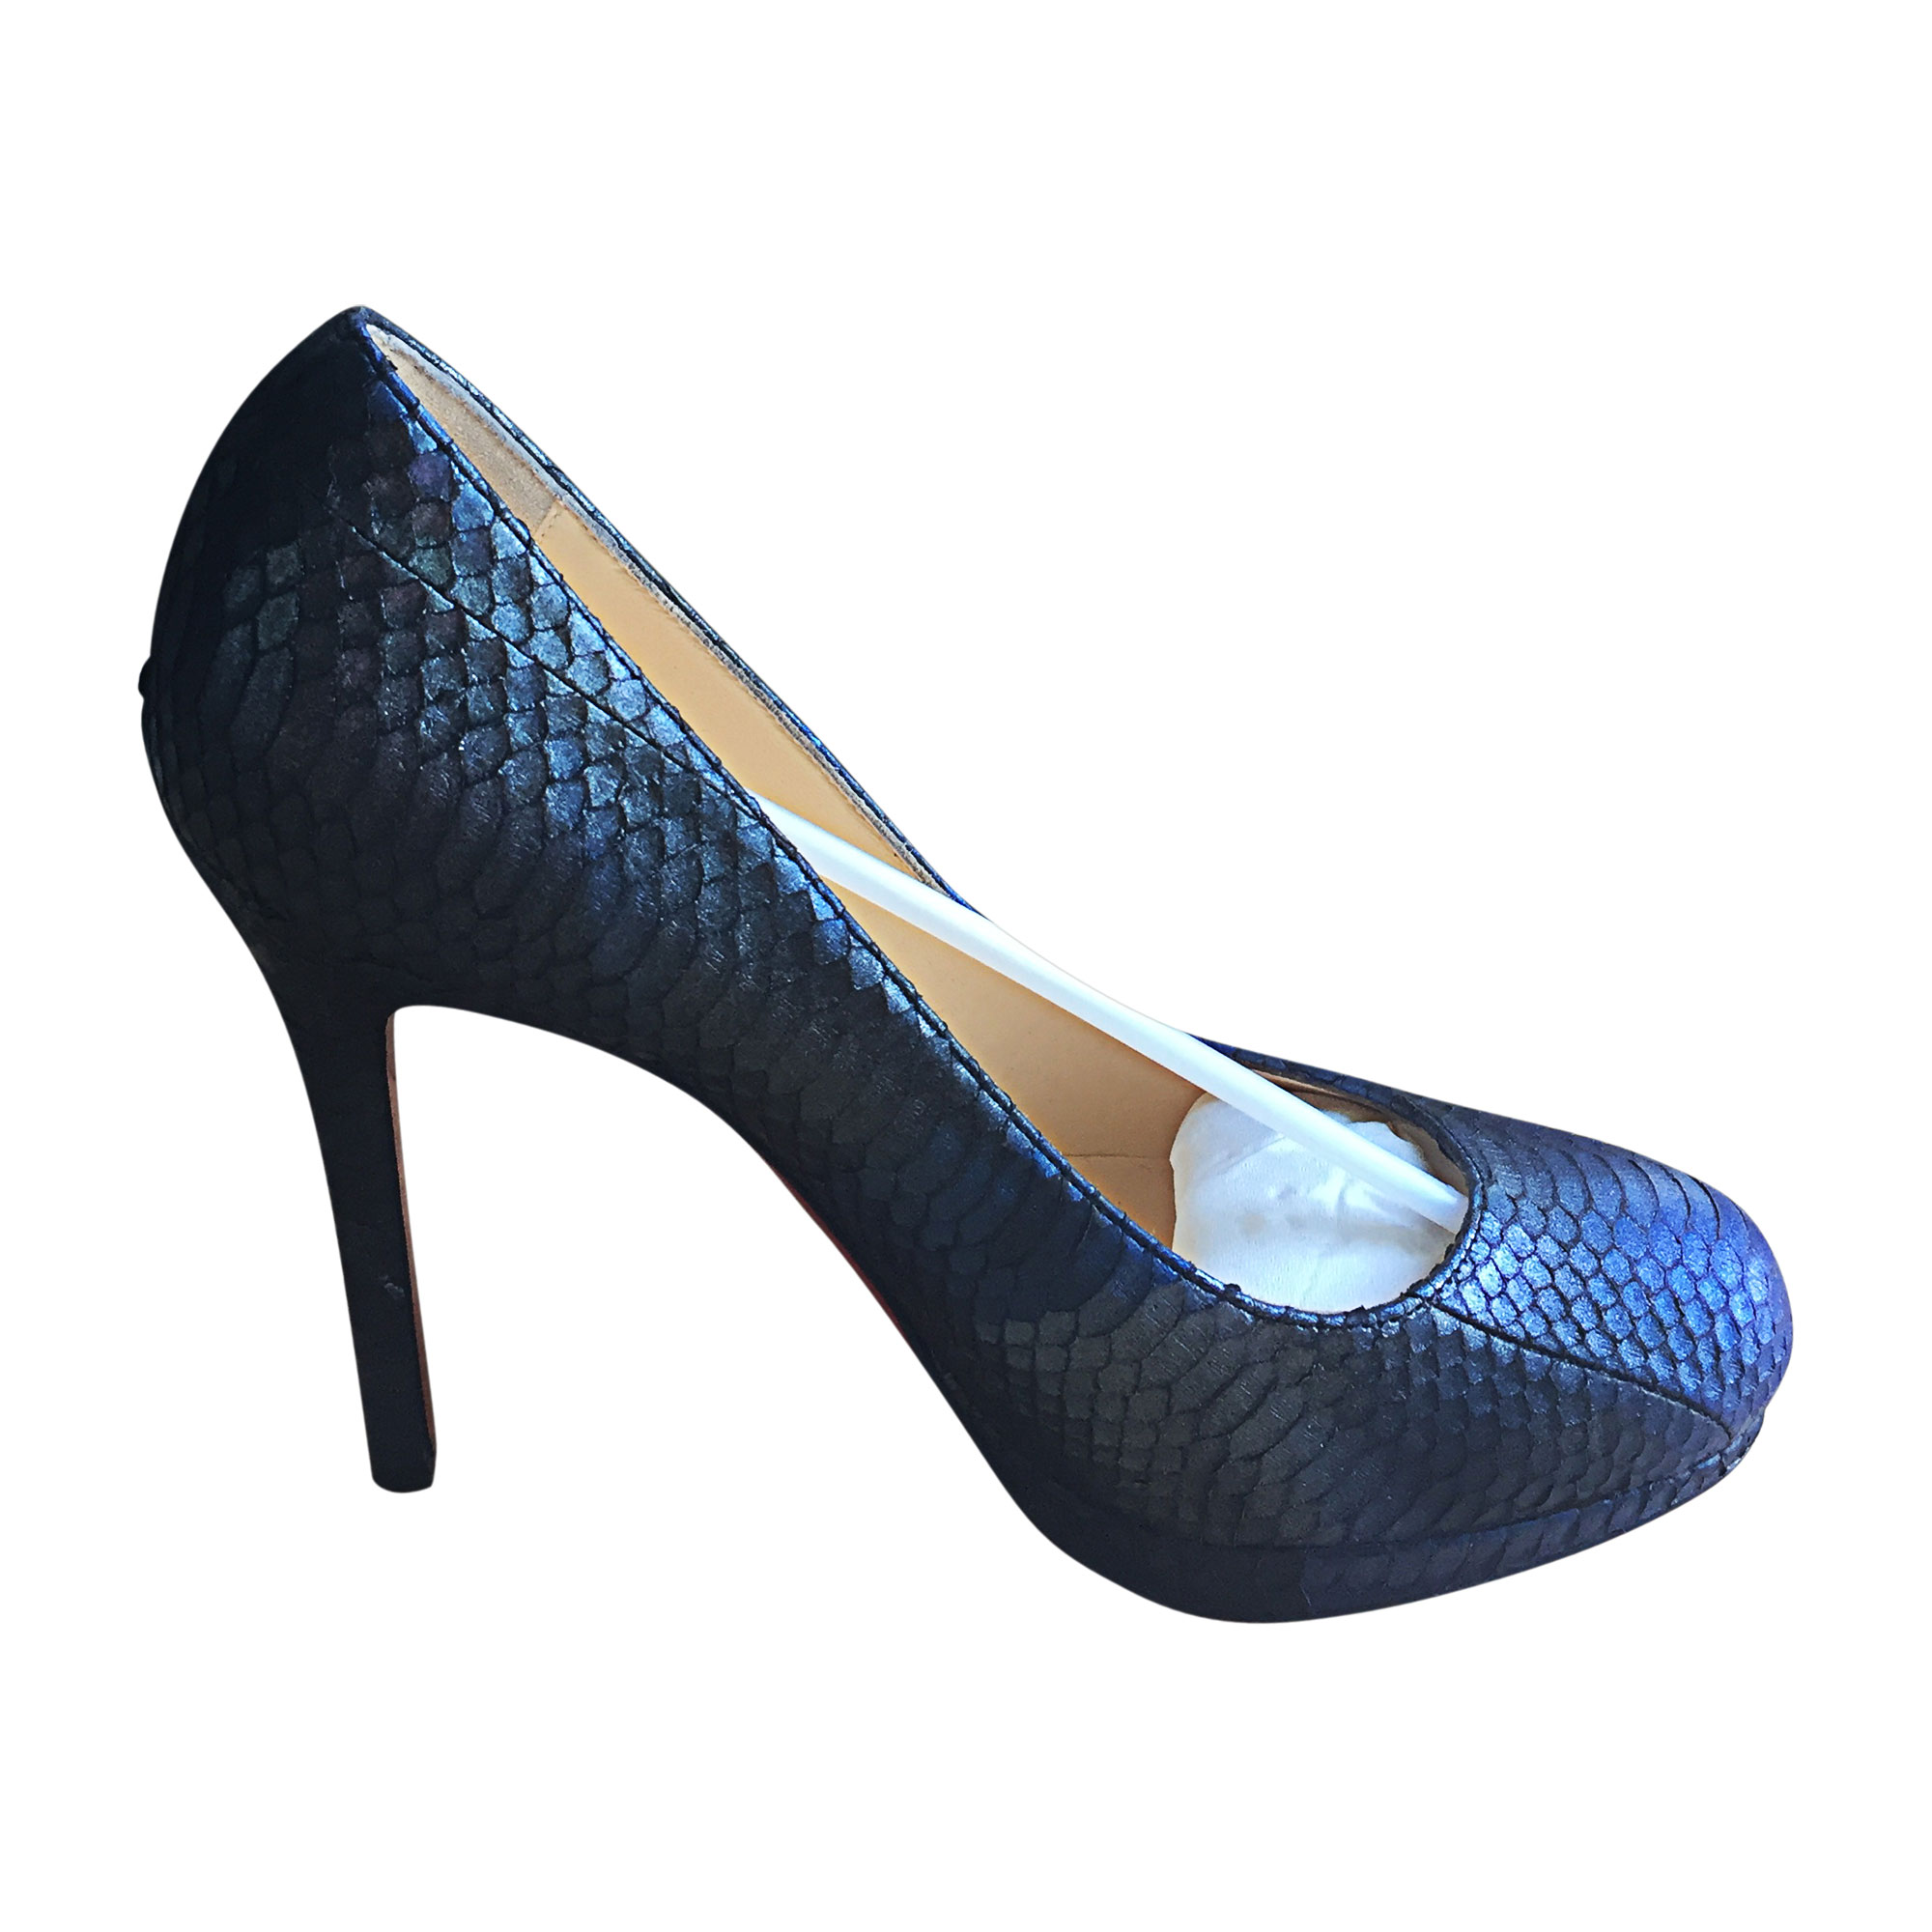 Pumps, Heels CHRISTIAN LOUBOUTIN Blue, navy, turquoise